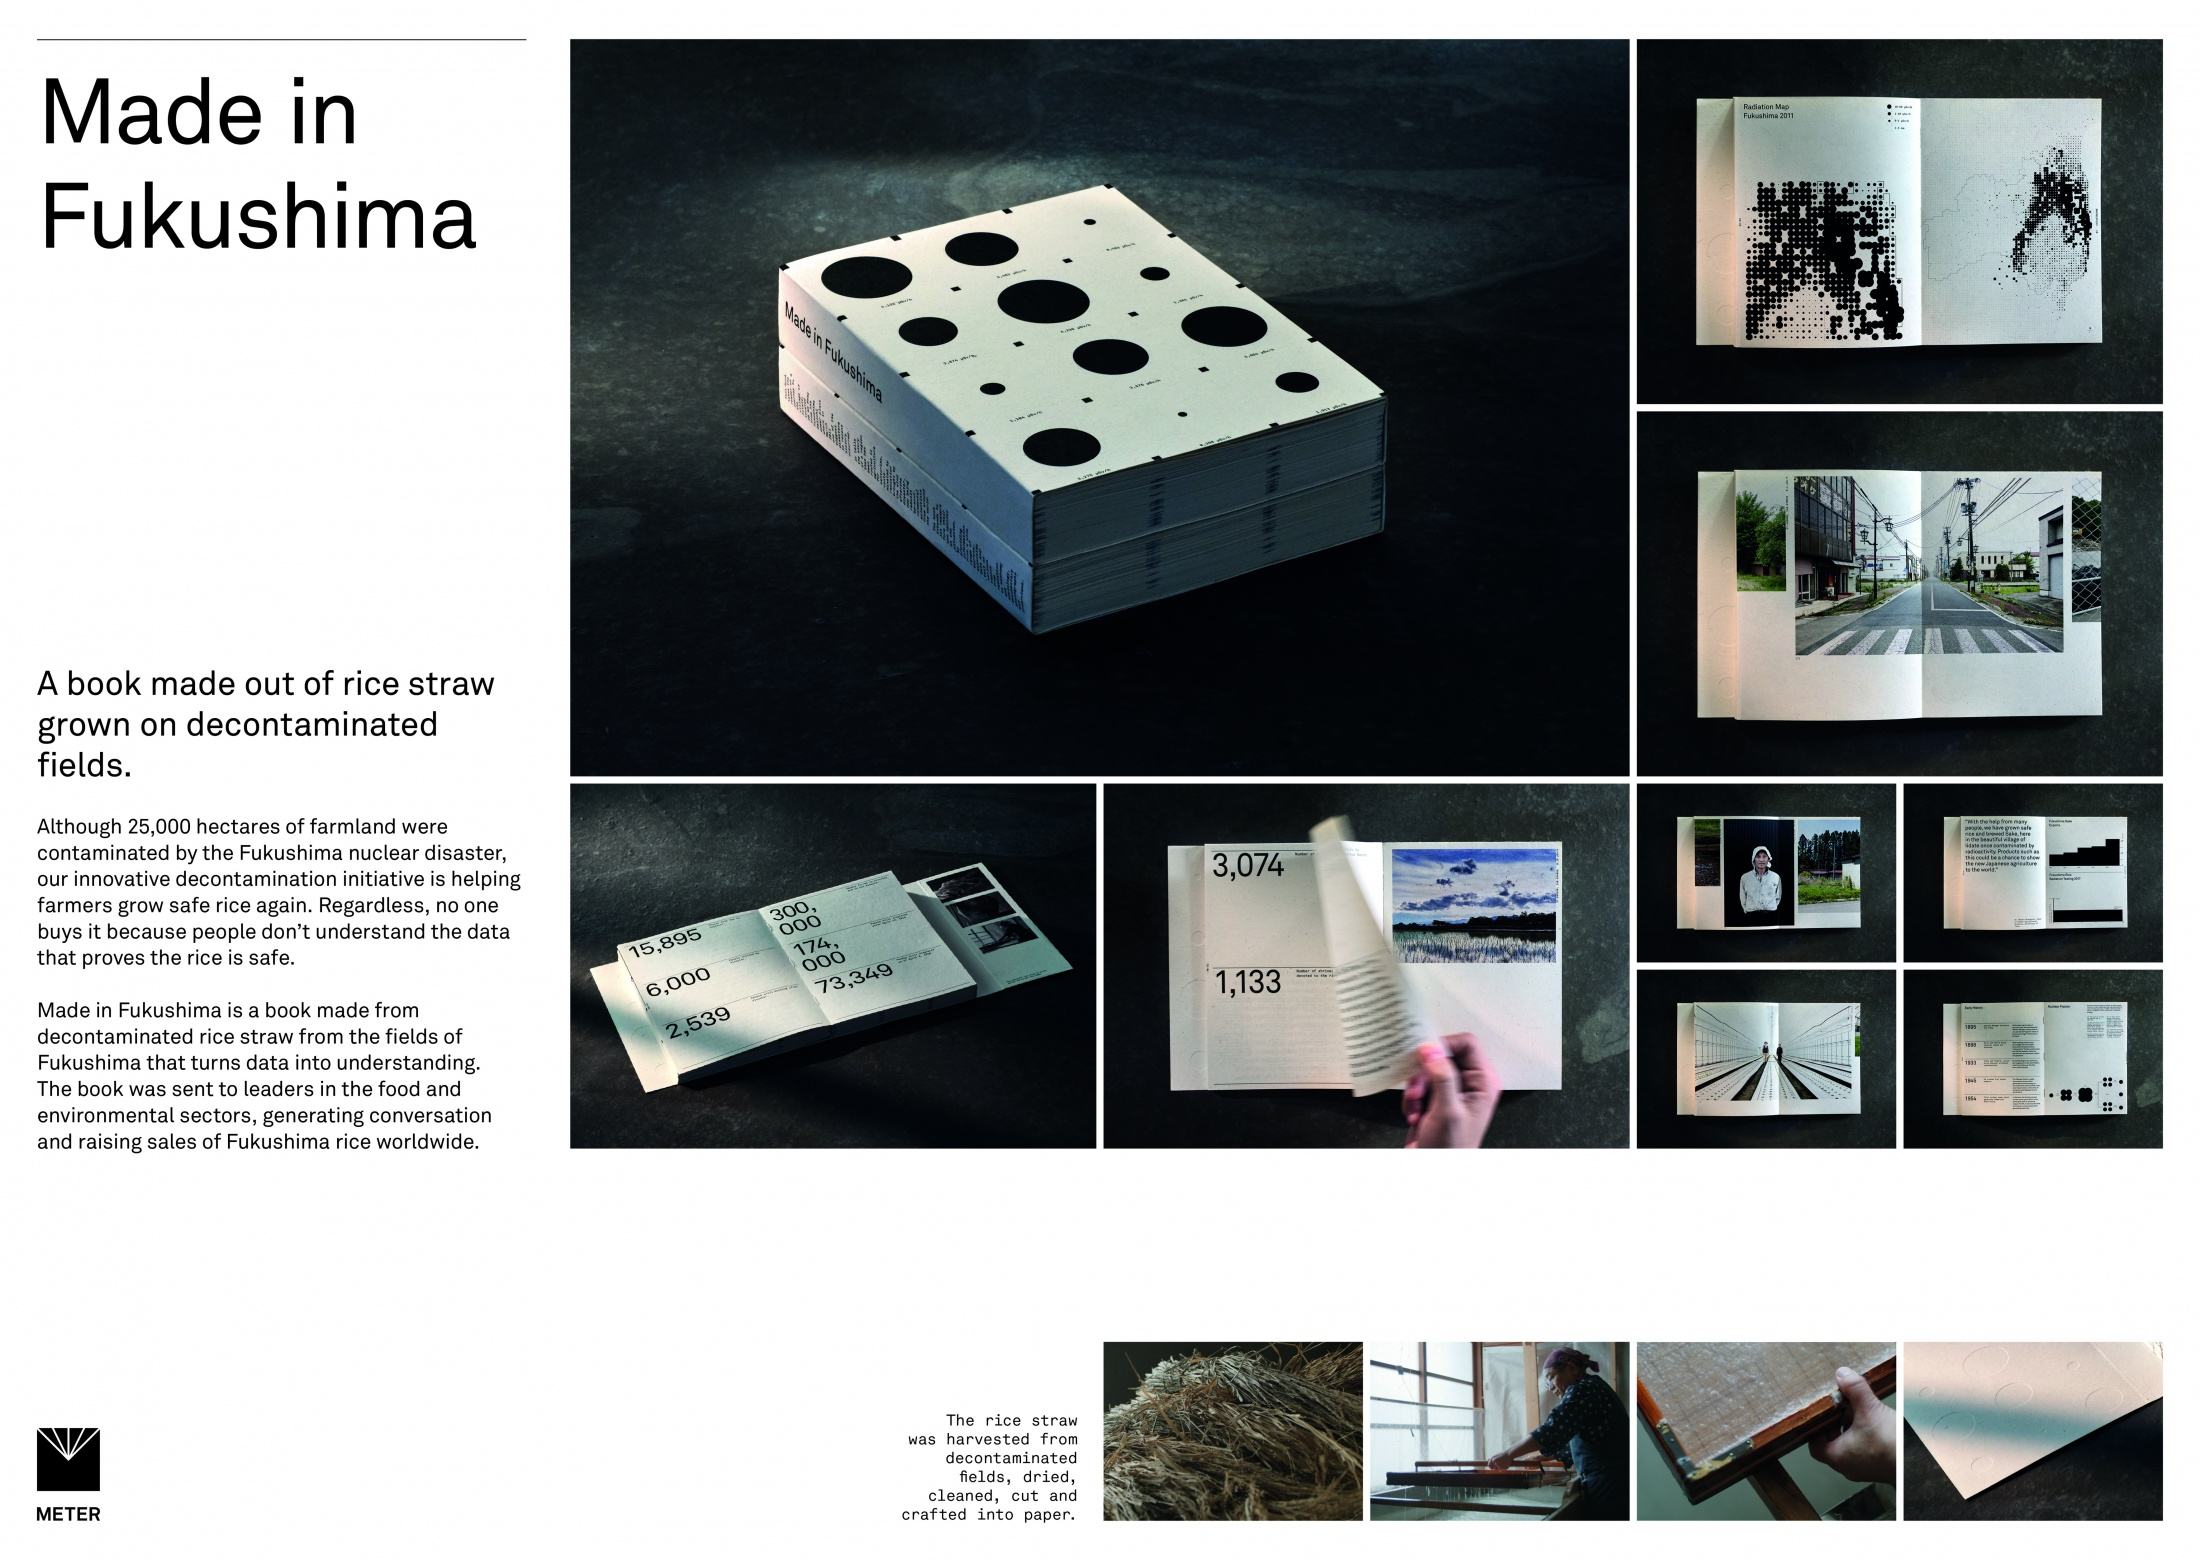 Thumbnail for Made in Fukushima. A book made out of rice straw grown on decontaminated farmland.